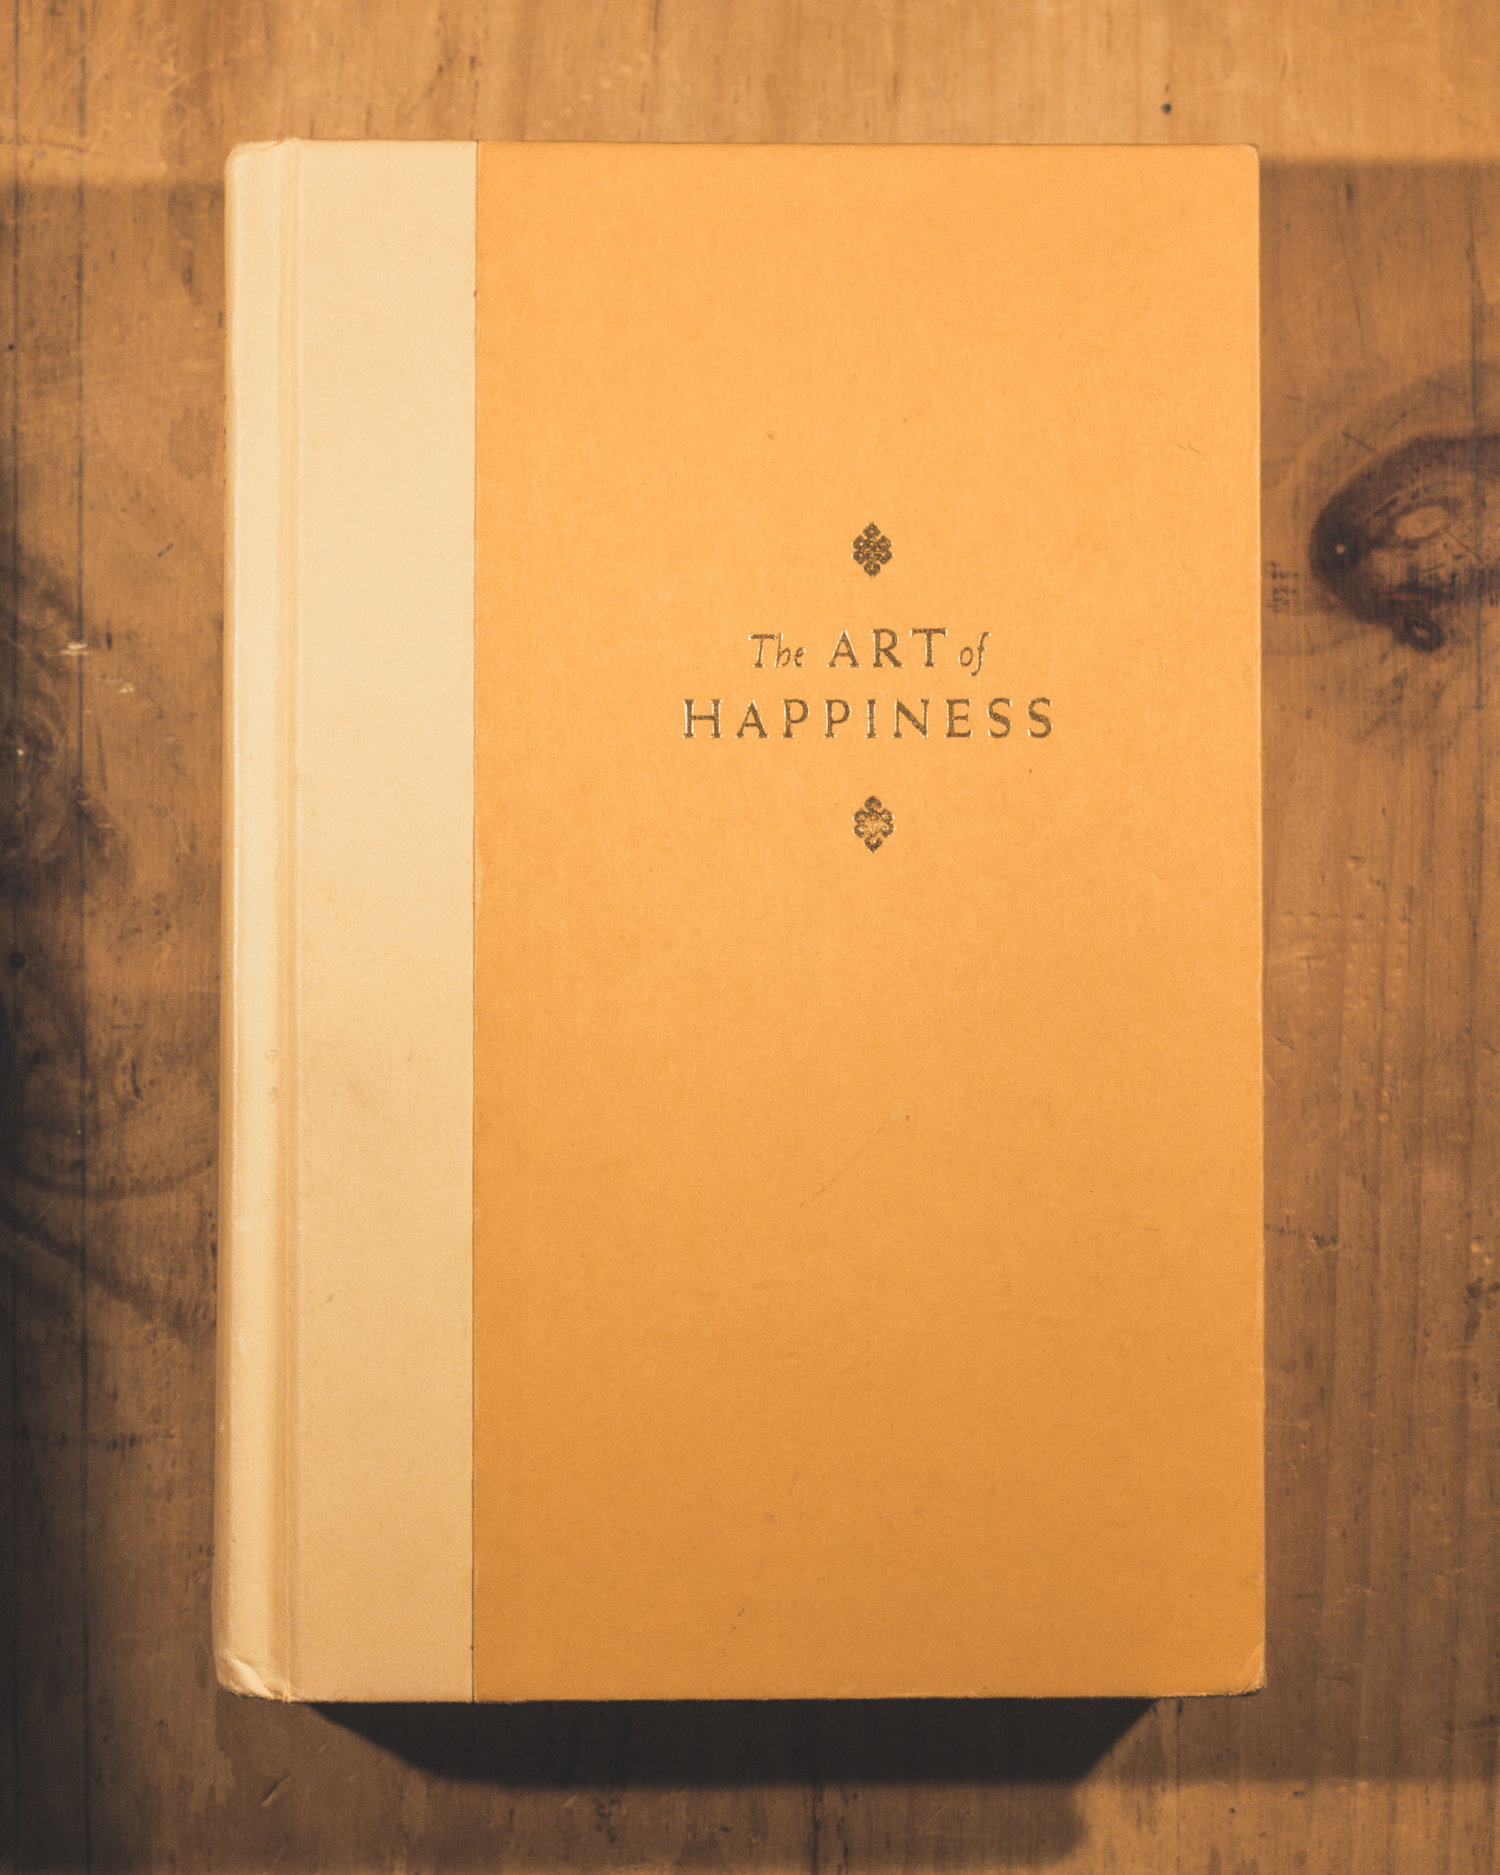 The Art of Happiness by His Holiness the Dalai Lama and Howard C. Cutler